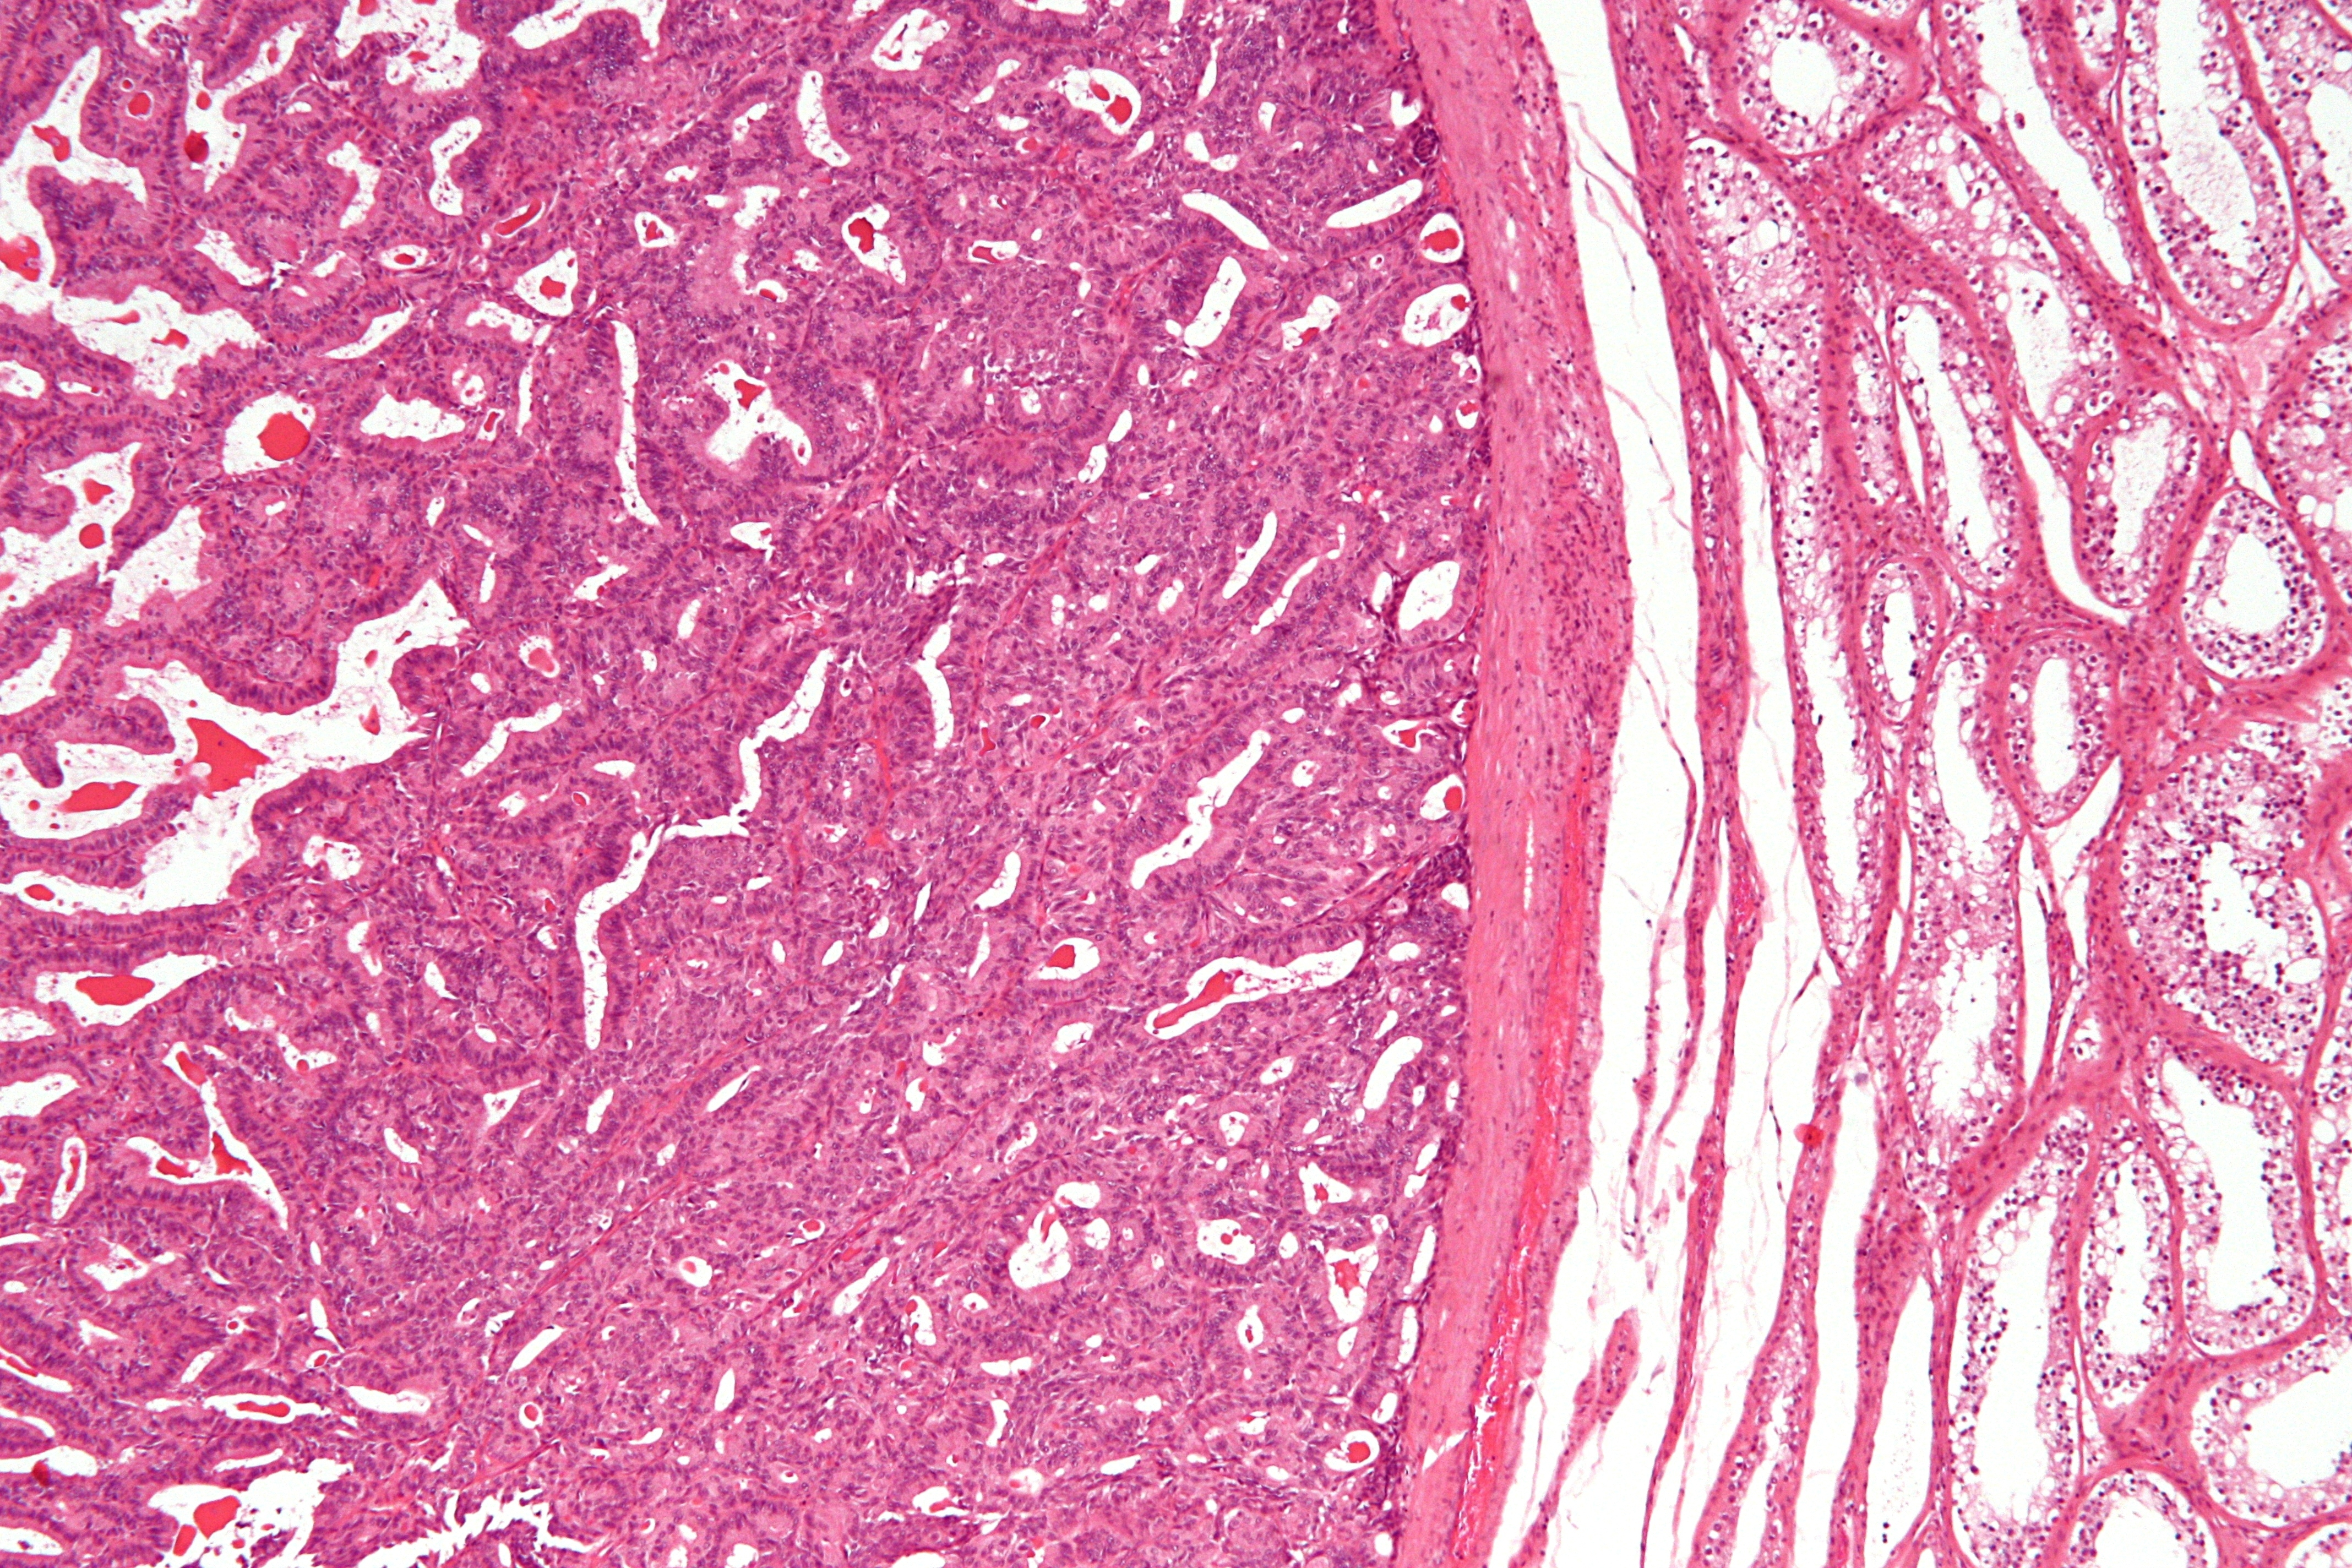 File:Adenocarcinoma of the rete testis - low mag.jpg - Wikimedia Commons